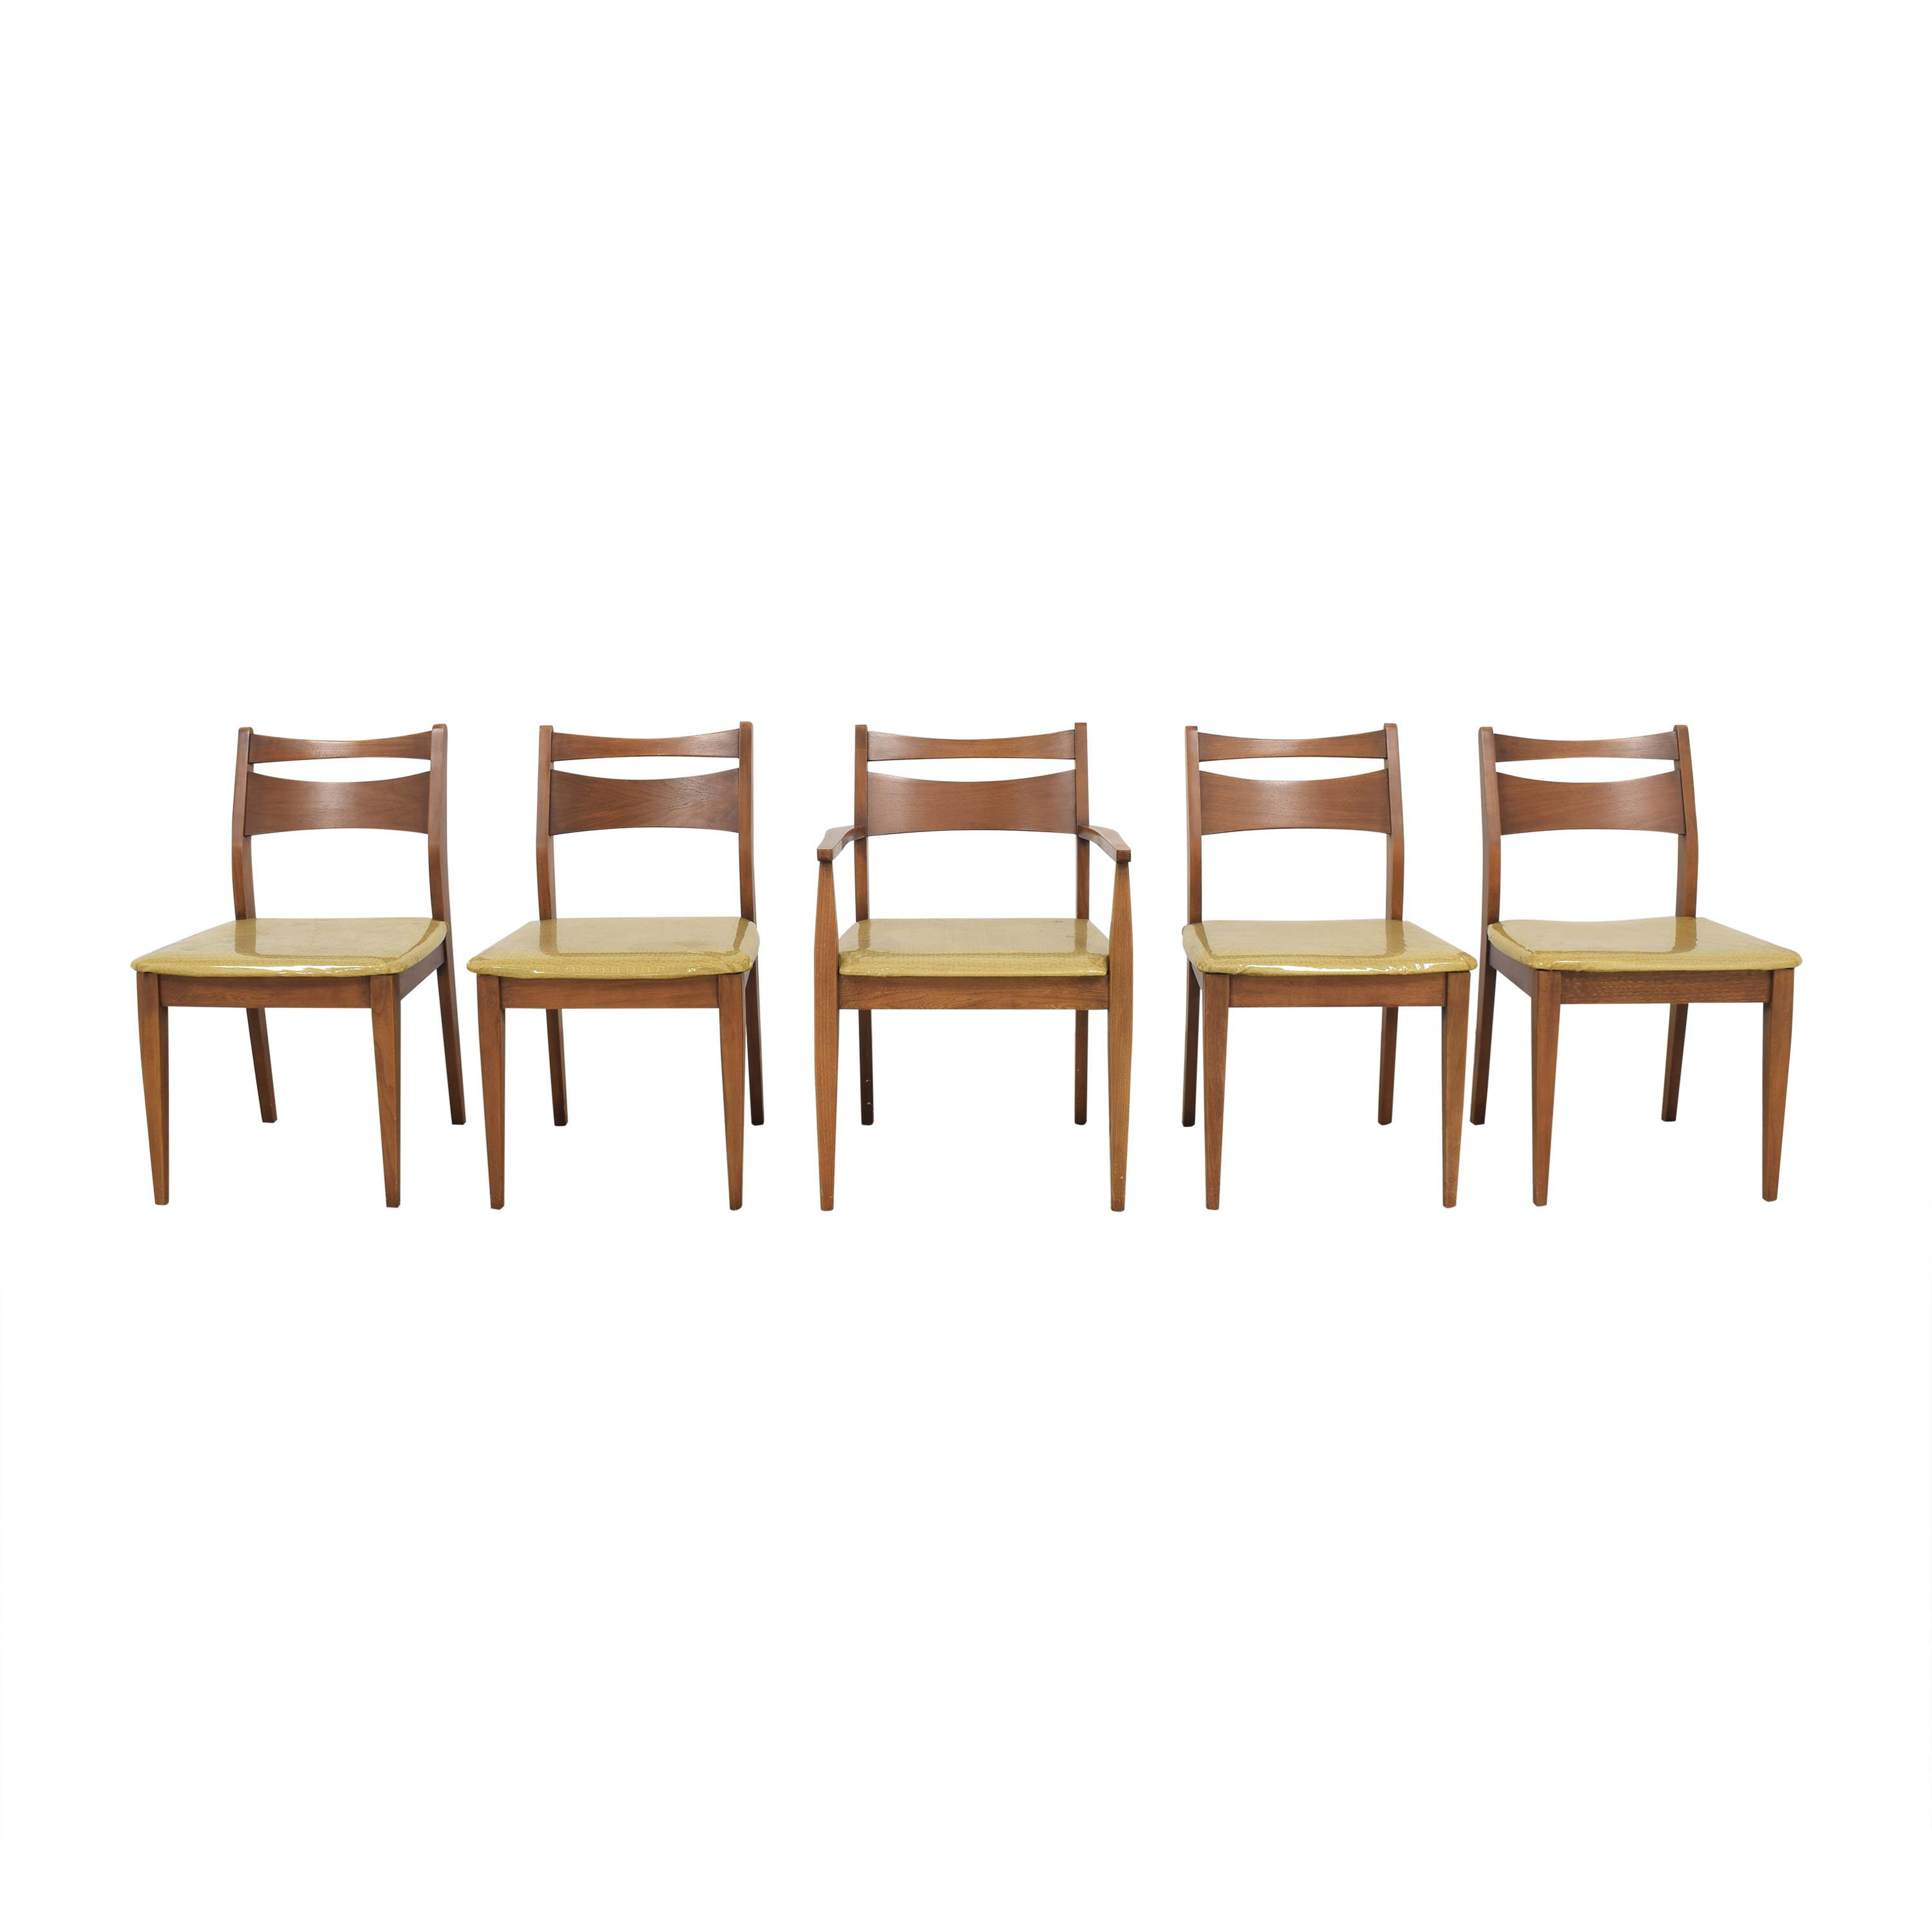 shop  Vintage Mid Century Modern Dining Chairs online